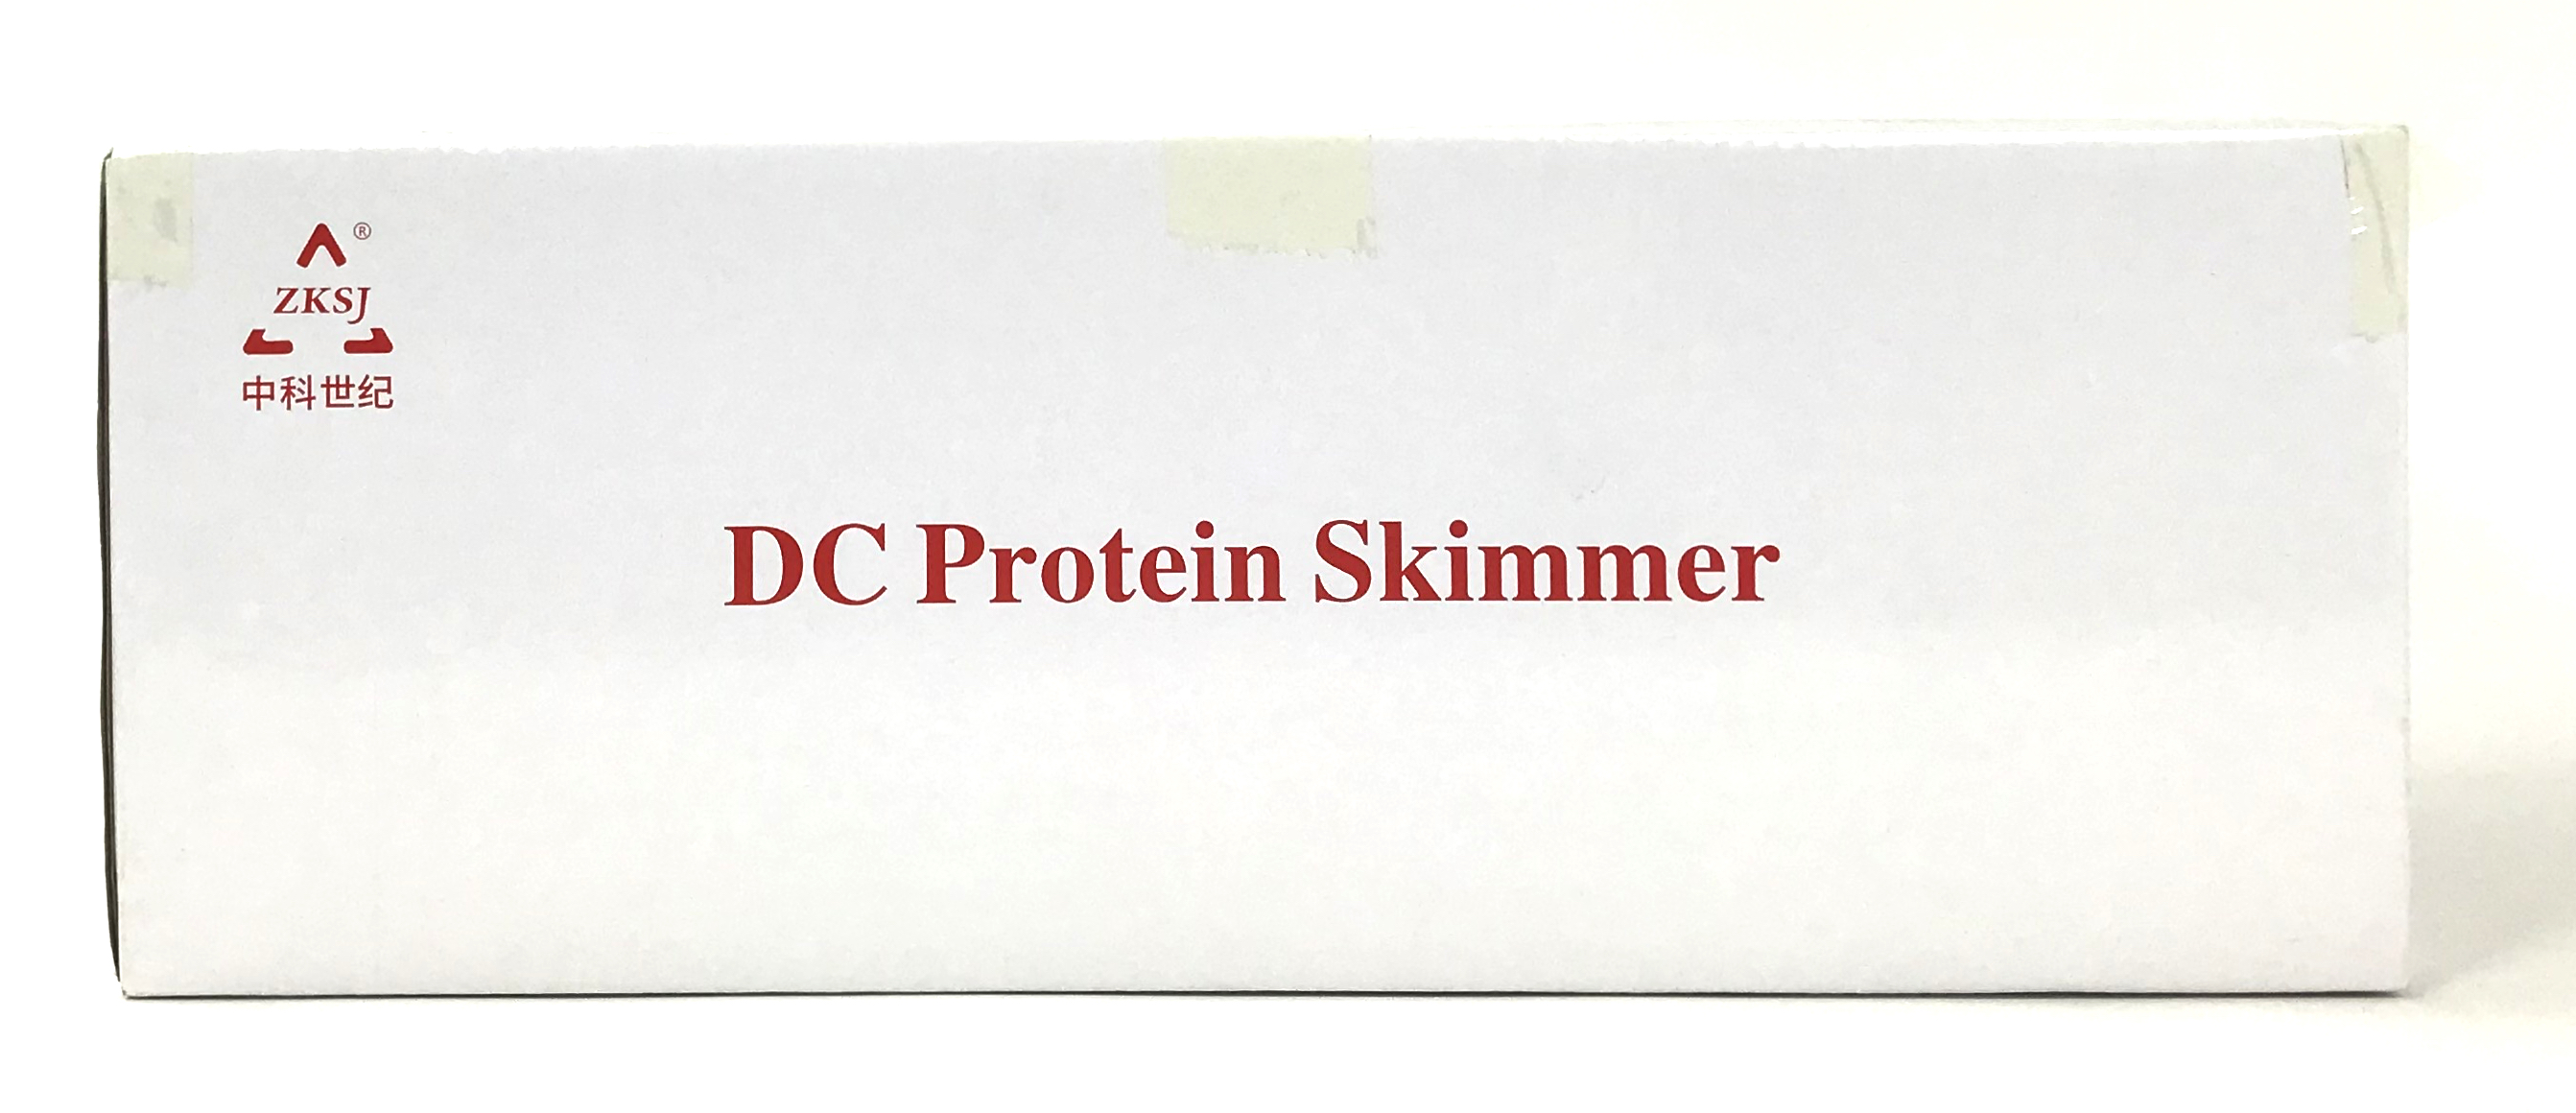 DC 200 Controllable Protein Skimmer  - 789 gph up to 200 Gallons